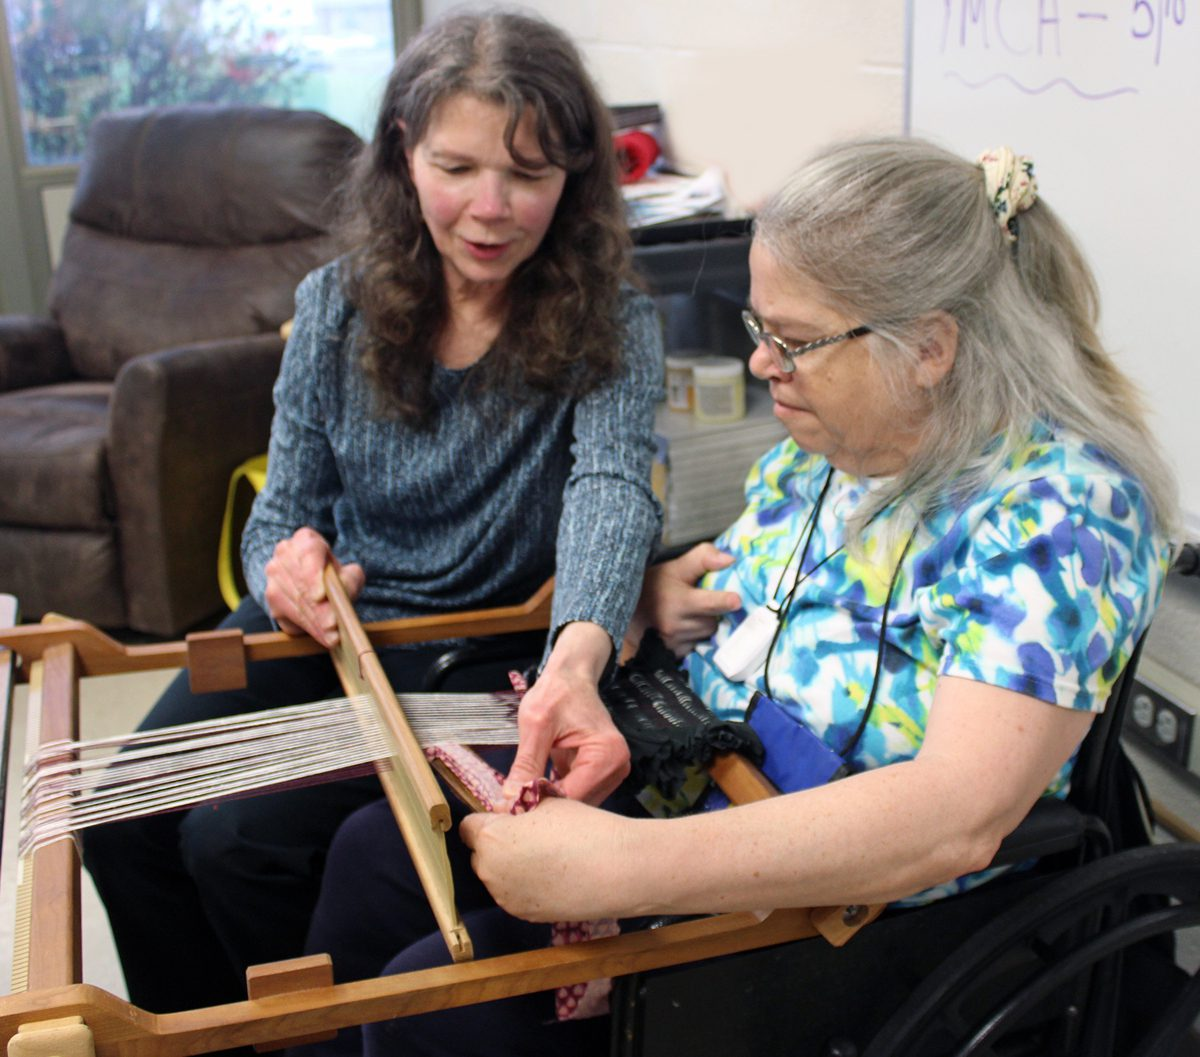 Volunteer Kay Rosenthal assists people explore their creative sides